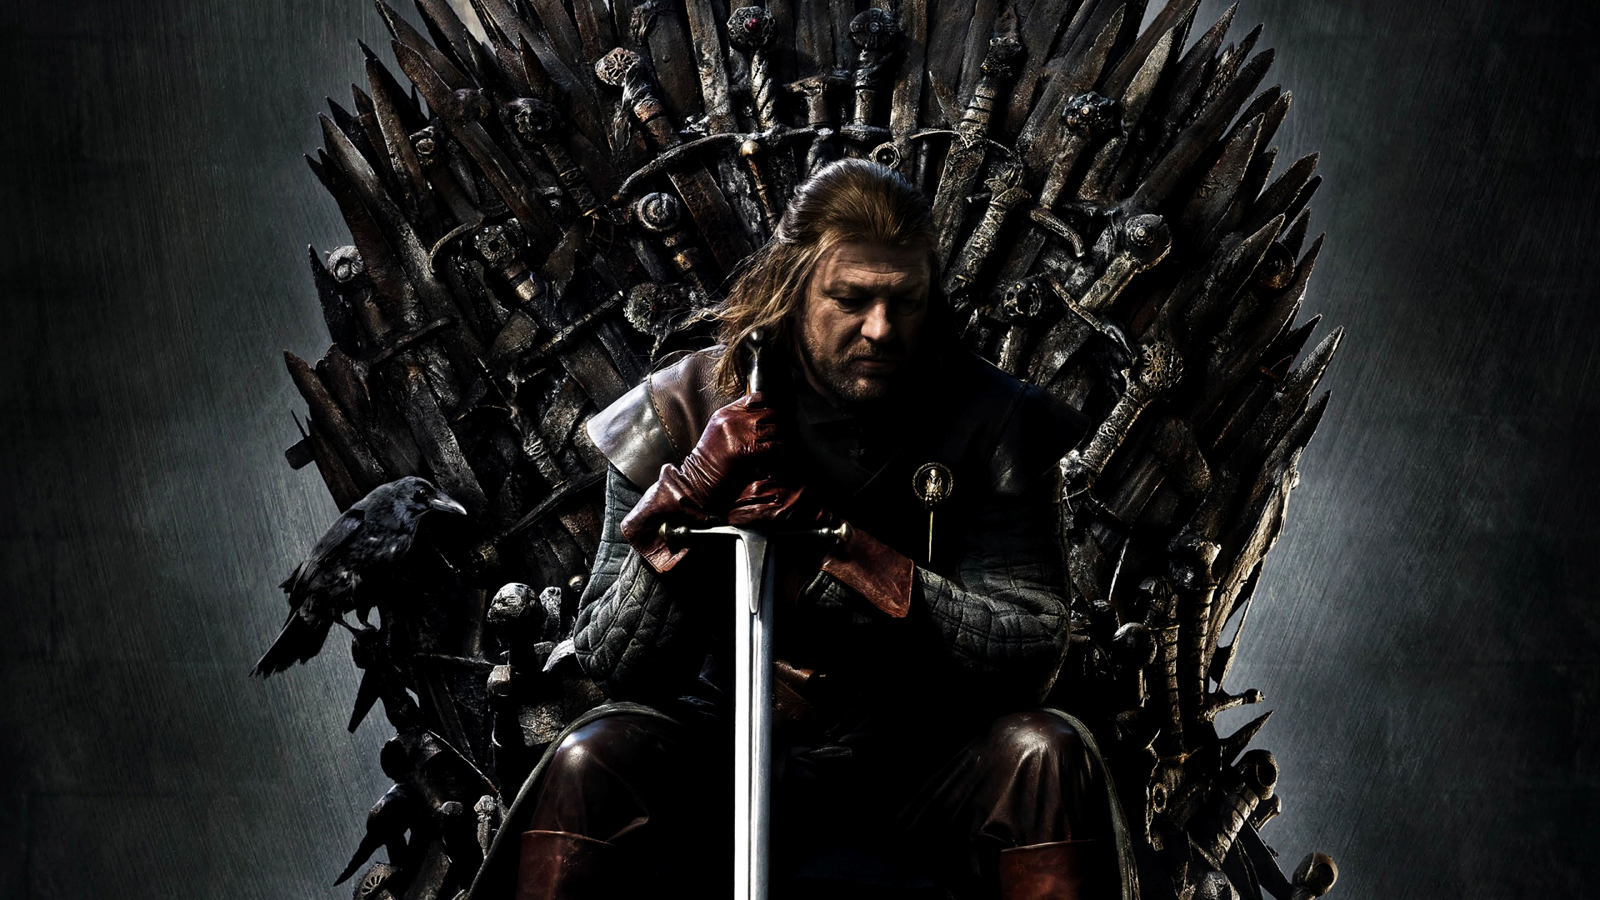 Game Of Thrones Eddard And Arya Stark Hd Wallpaper Best Hd Wallpaper ...